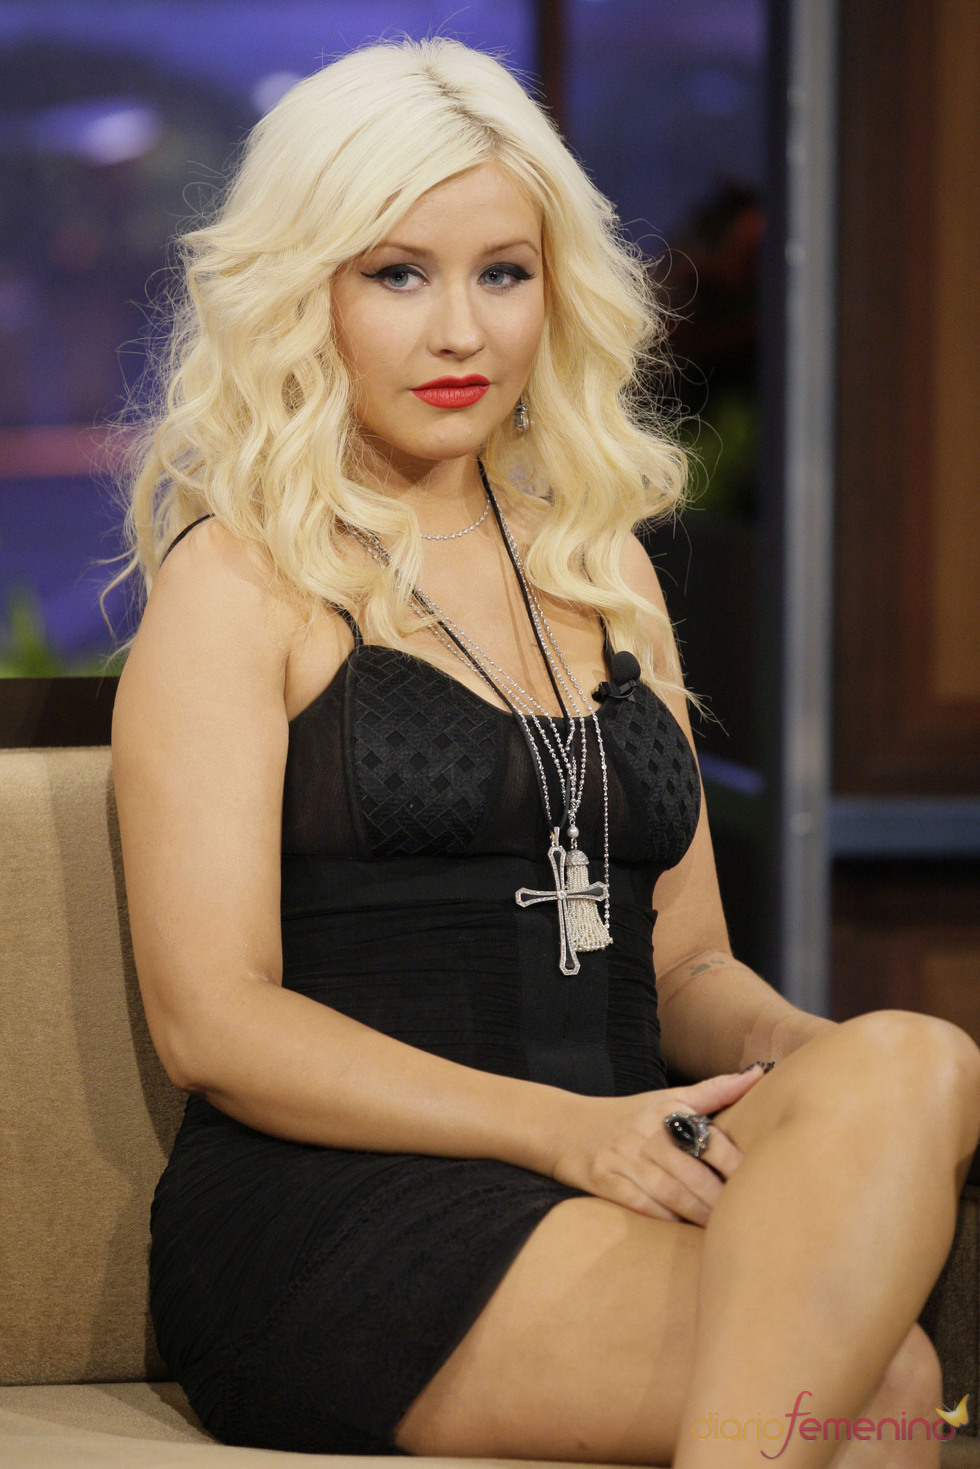 The Sexy Voice: Christina Aguilera – So Sexy for My Blog Christina